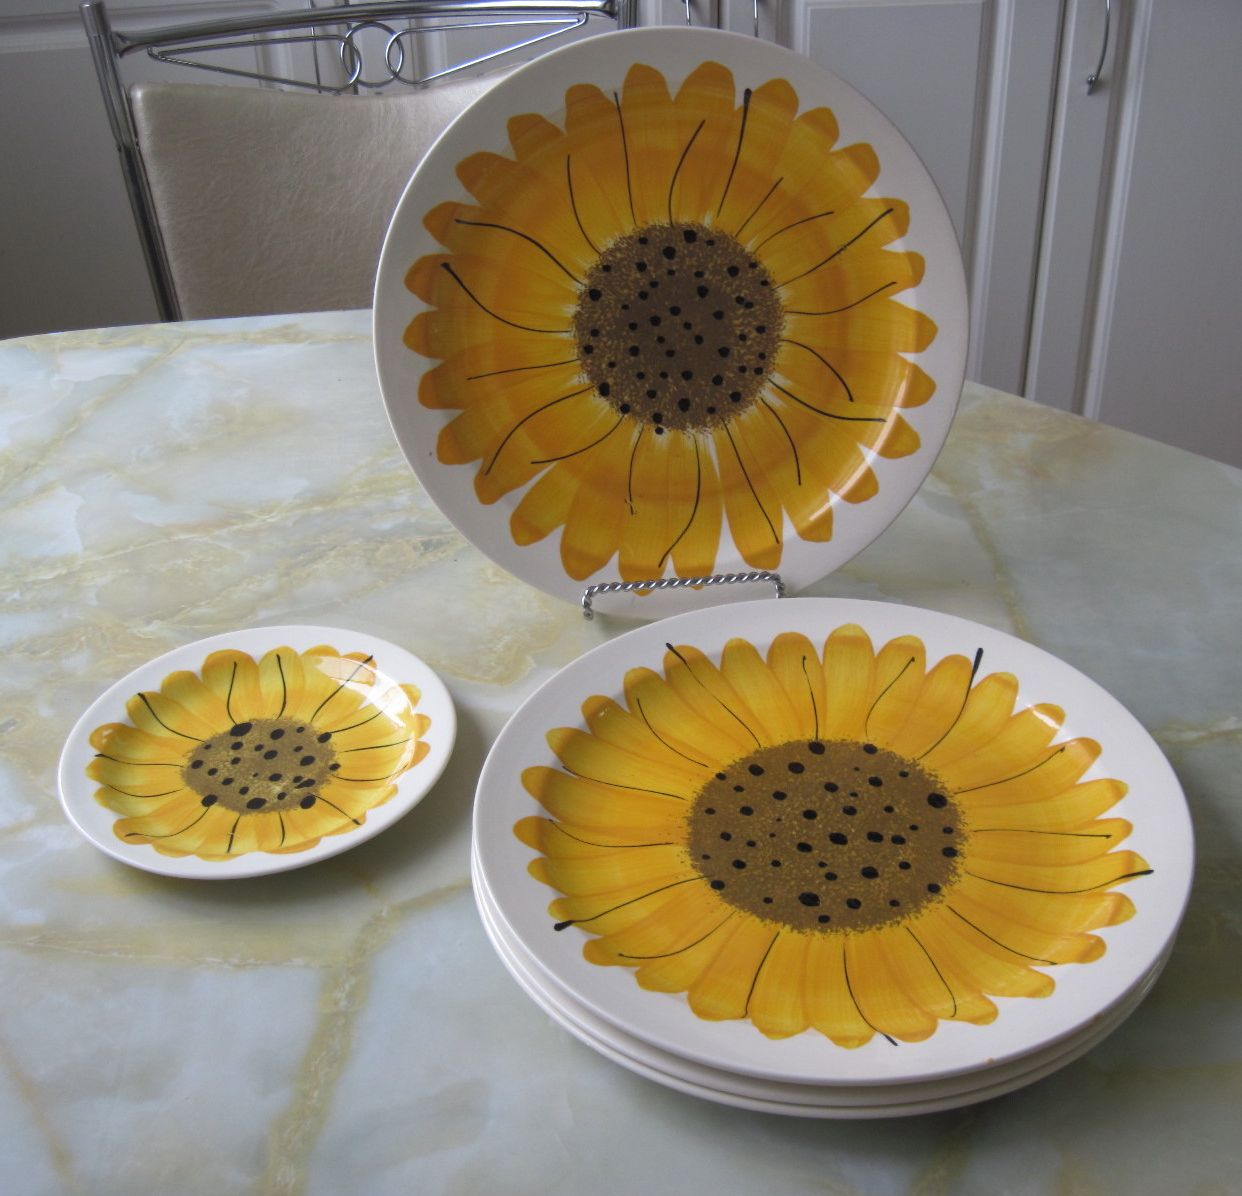 Sunflower Home Decor: Sunflower Kitchen Decor Ideas For Modern Homes